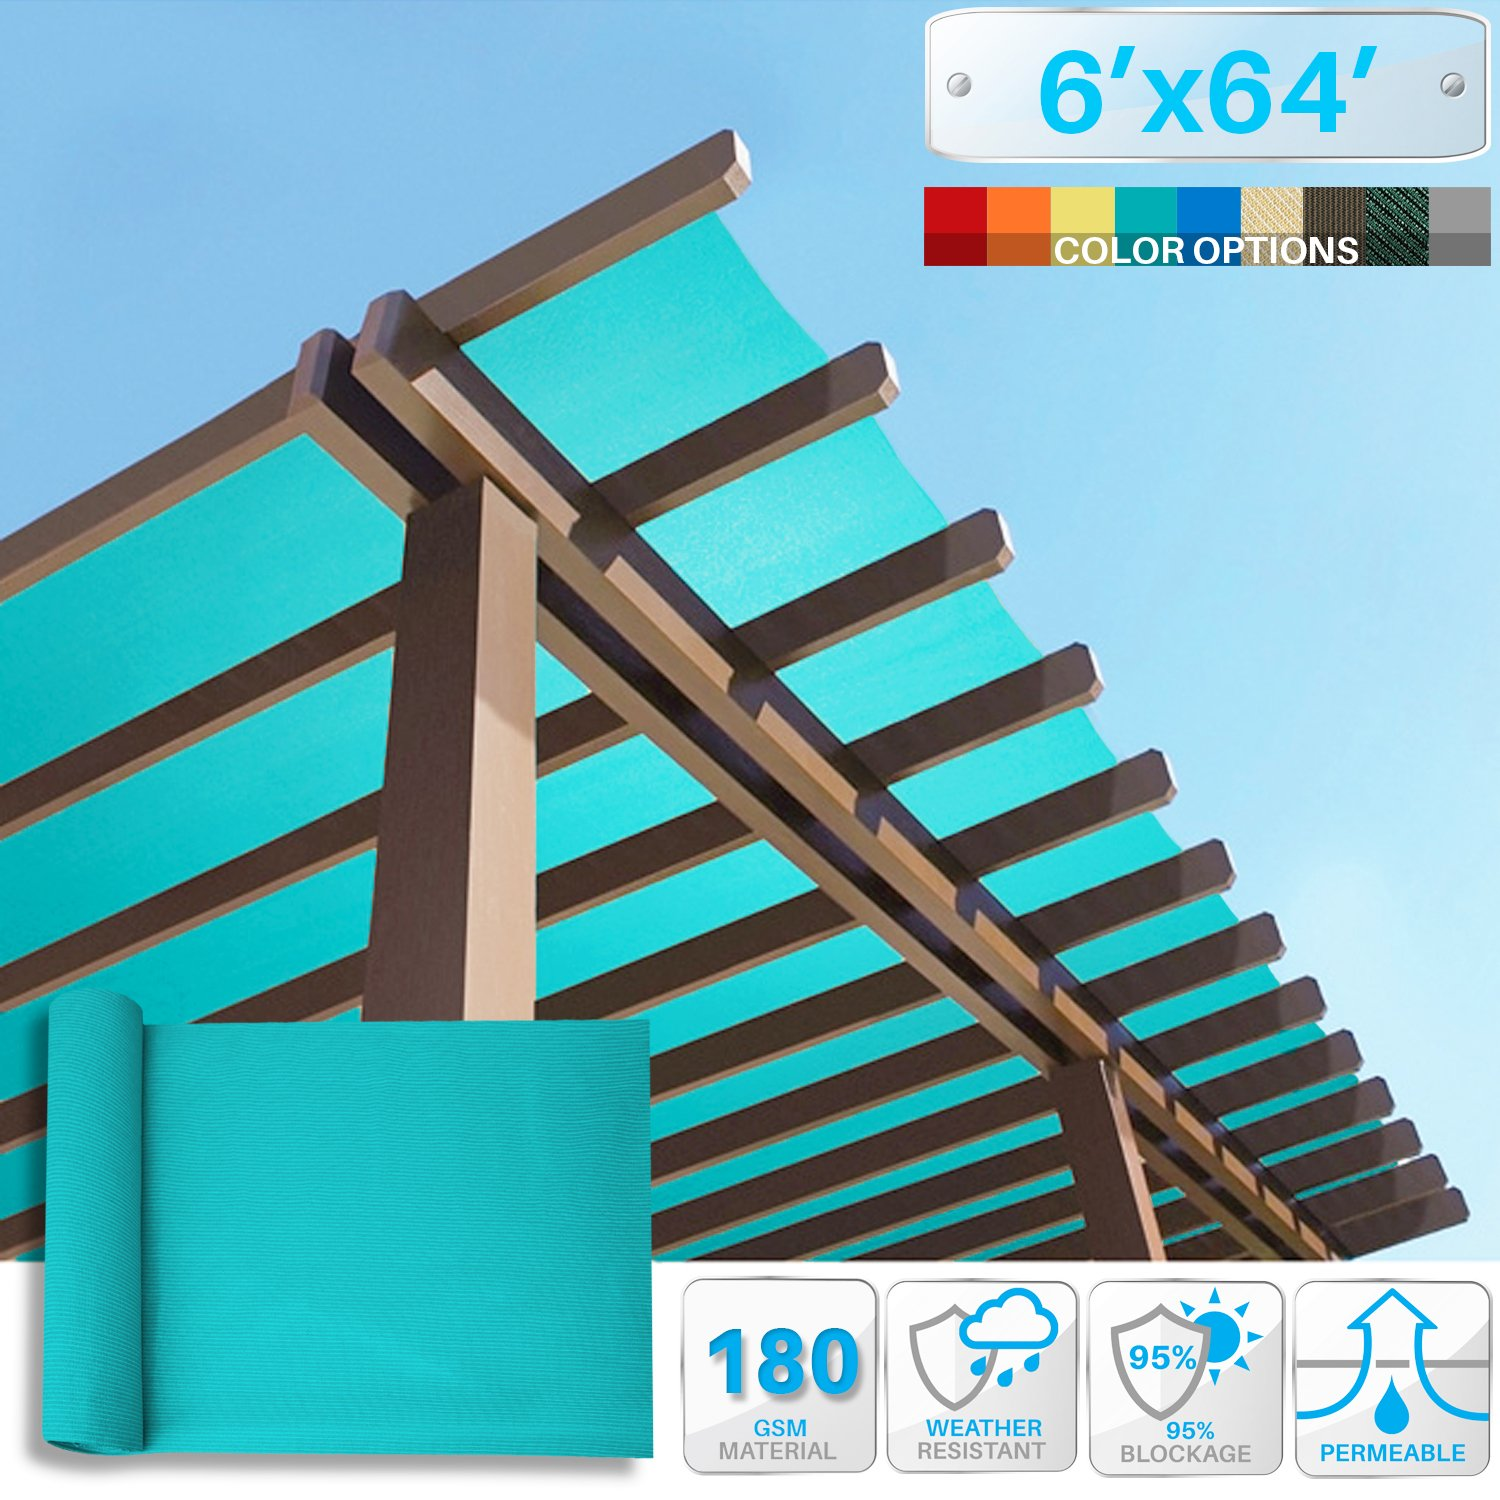 Patio Paradise 6' x 64' Sunblock Shade Cloth Roll,Turquoise Green Sun Shade Fabric 95% UV Resistant Mesh Netting Cover for Outdoor,Backyard,Plant,Greenhouse,Barn